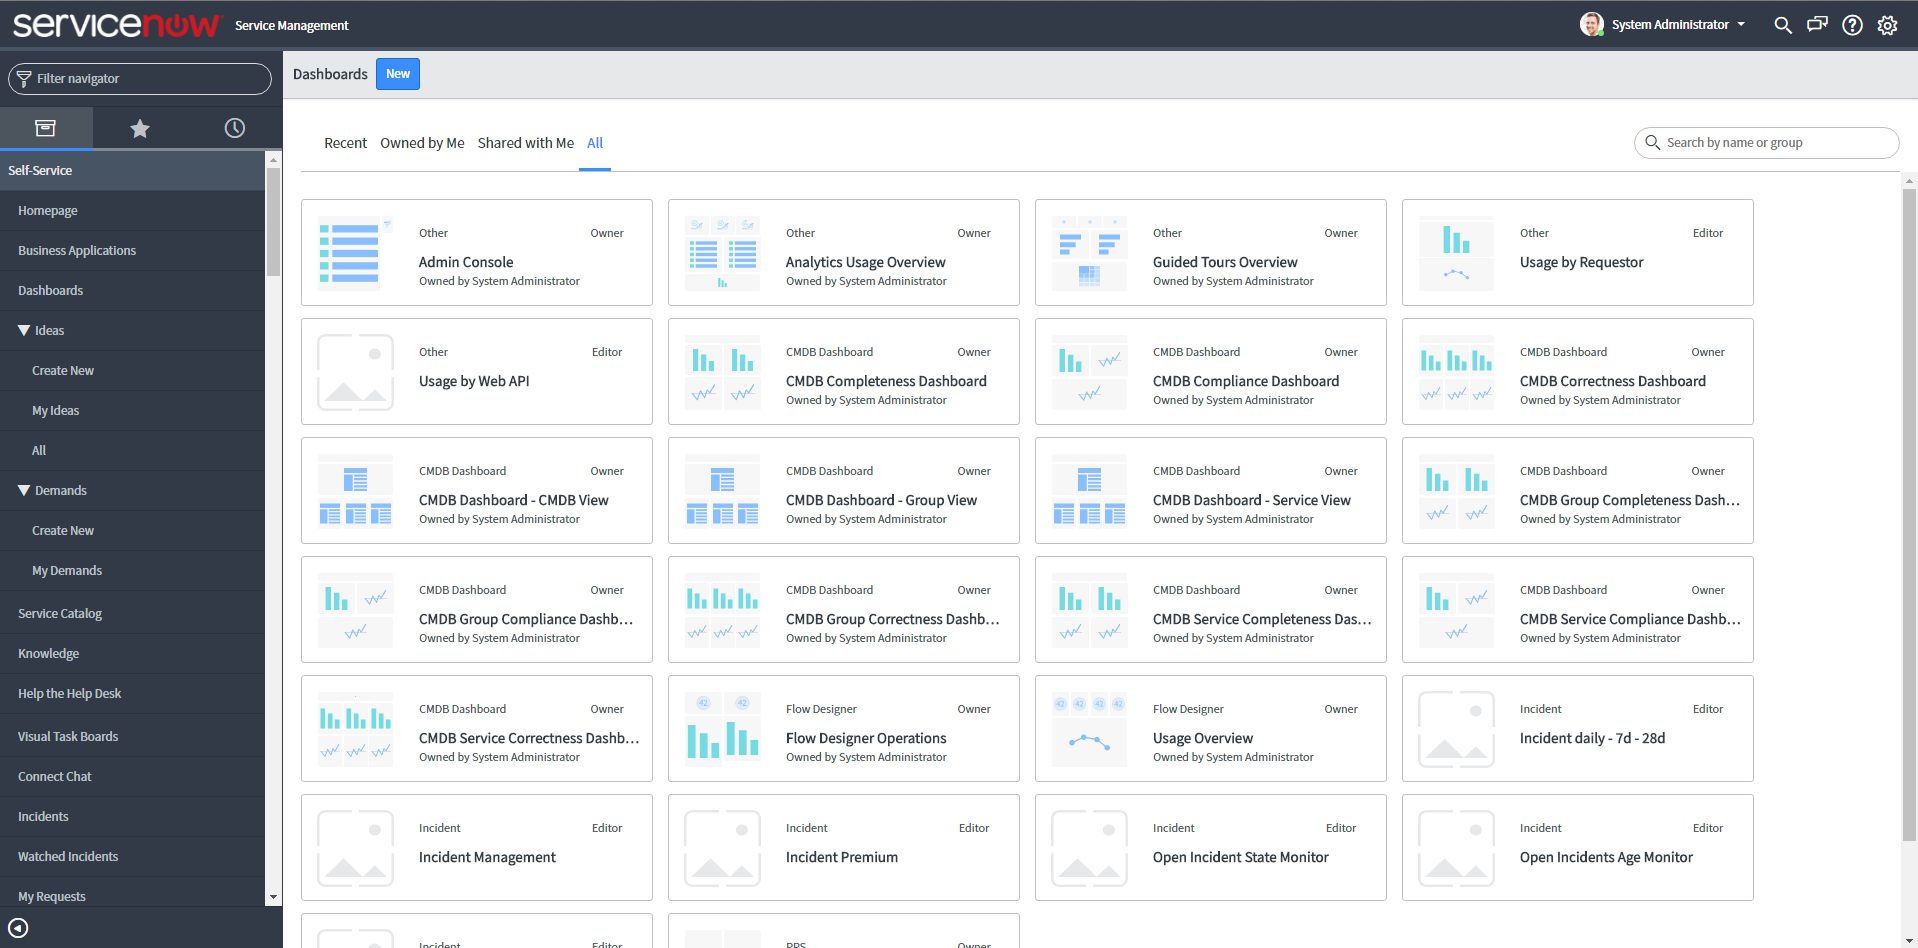 Dashboards Overview